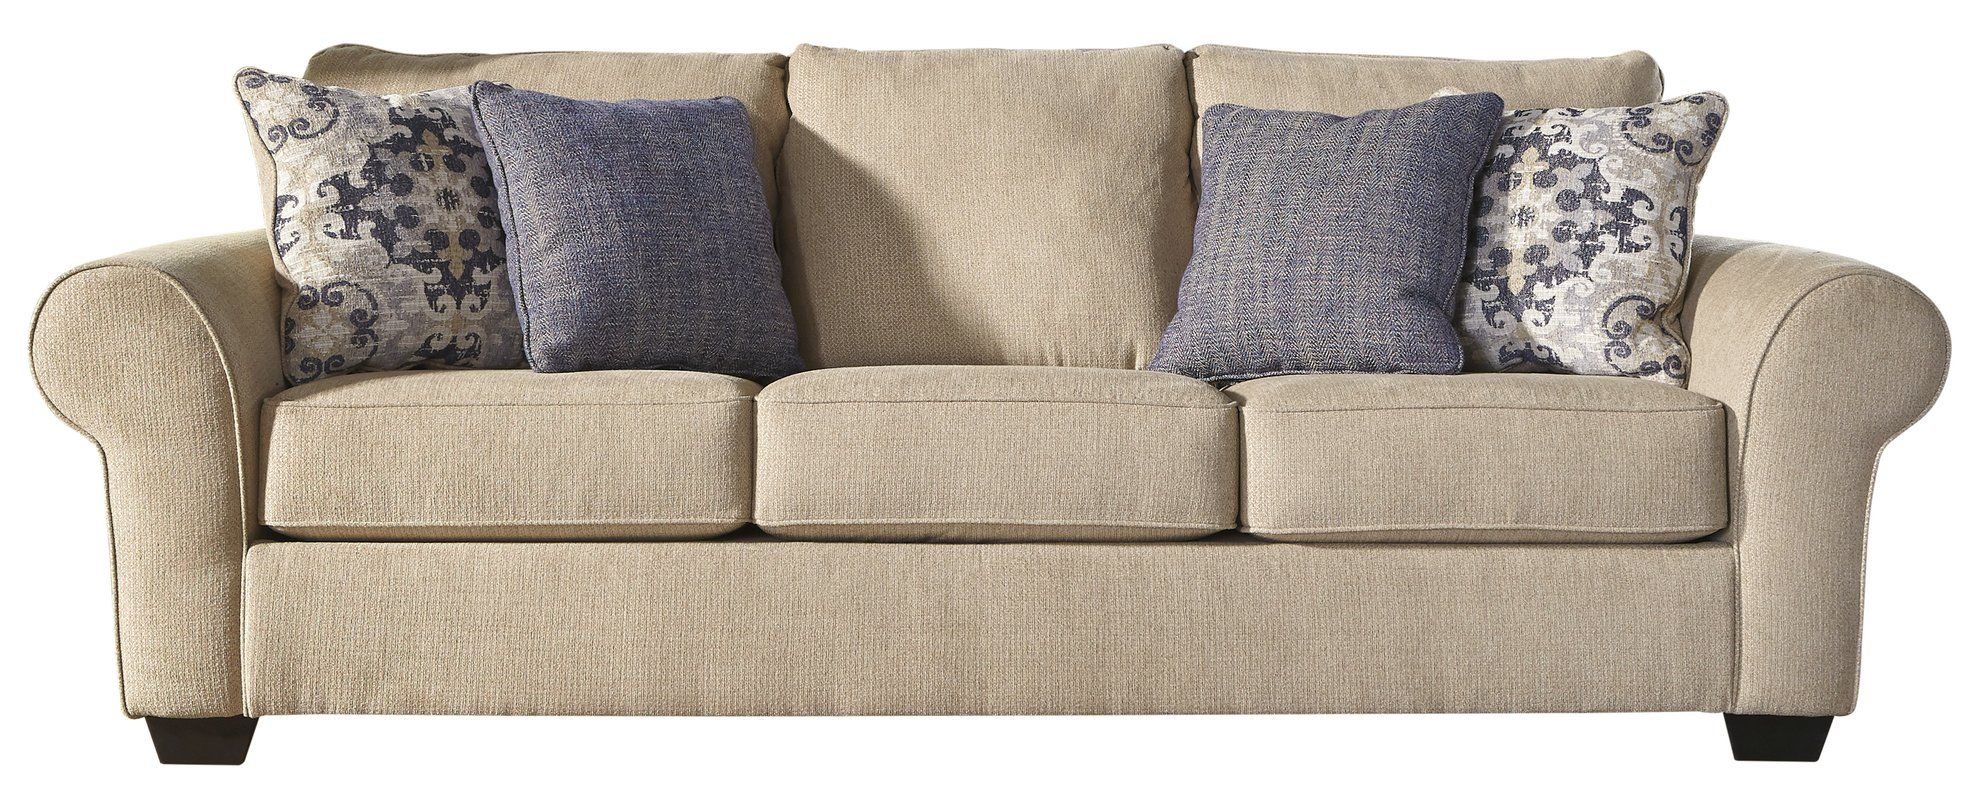 The Denite Cream Twill Sofa From Ashley Furniture Comes Upholstered In Creamy Beige Fabric Accented By Rolled Arms And Tufted Trim For A